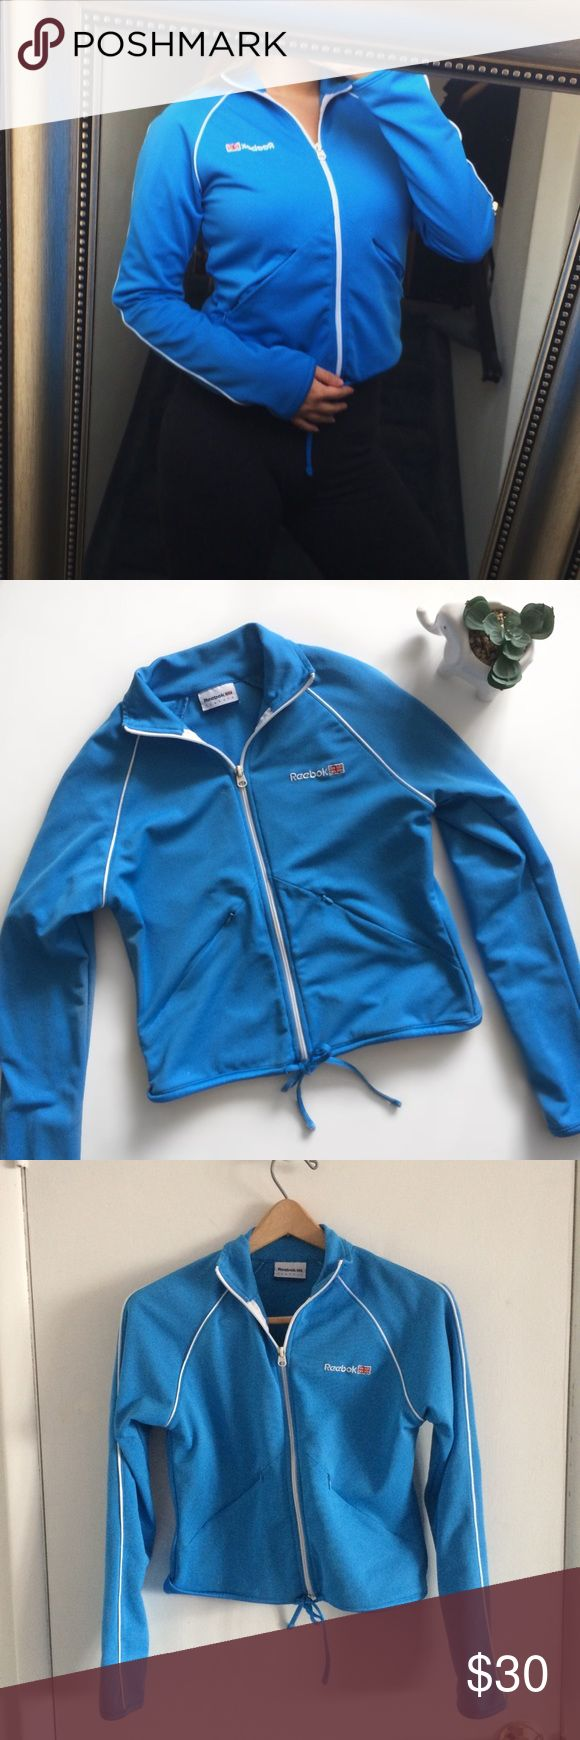 "Reebok Classic Blue Zip Up Athletic Jacket Vintage Reebok Classic Blue and White Lined Jacket. Size and materials label has been cut off. Fits XS/S.  Measurements laying flat (approx):    *17""in pit to pit    *19""in length    *26.5""in sleeve length (from collar to end of sleeve hem) Reebok Jackets & Coats"